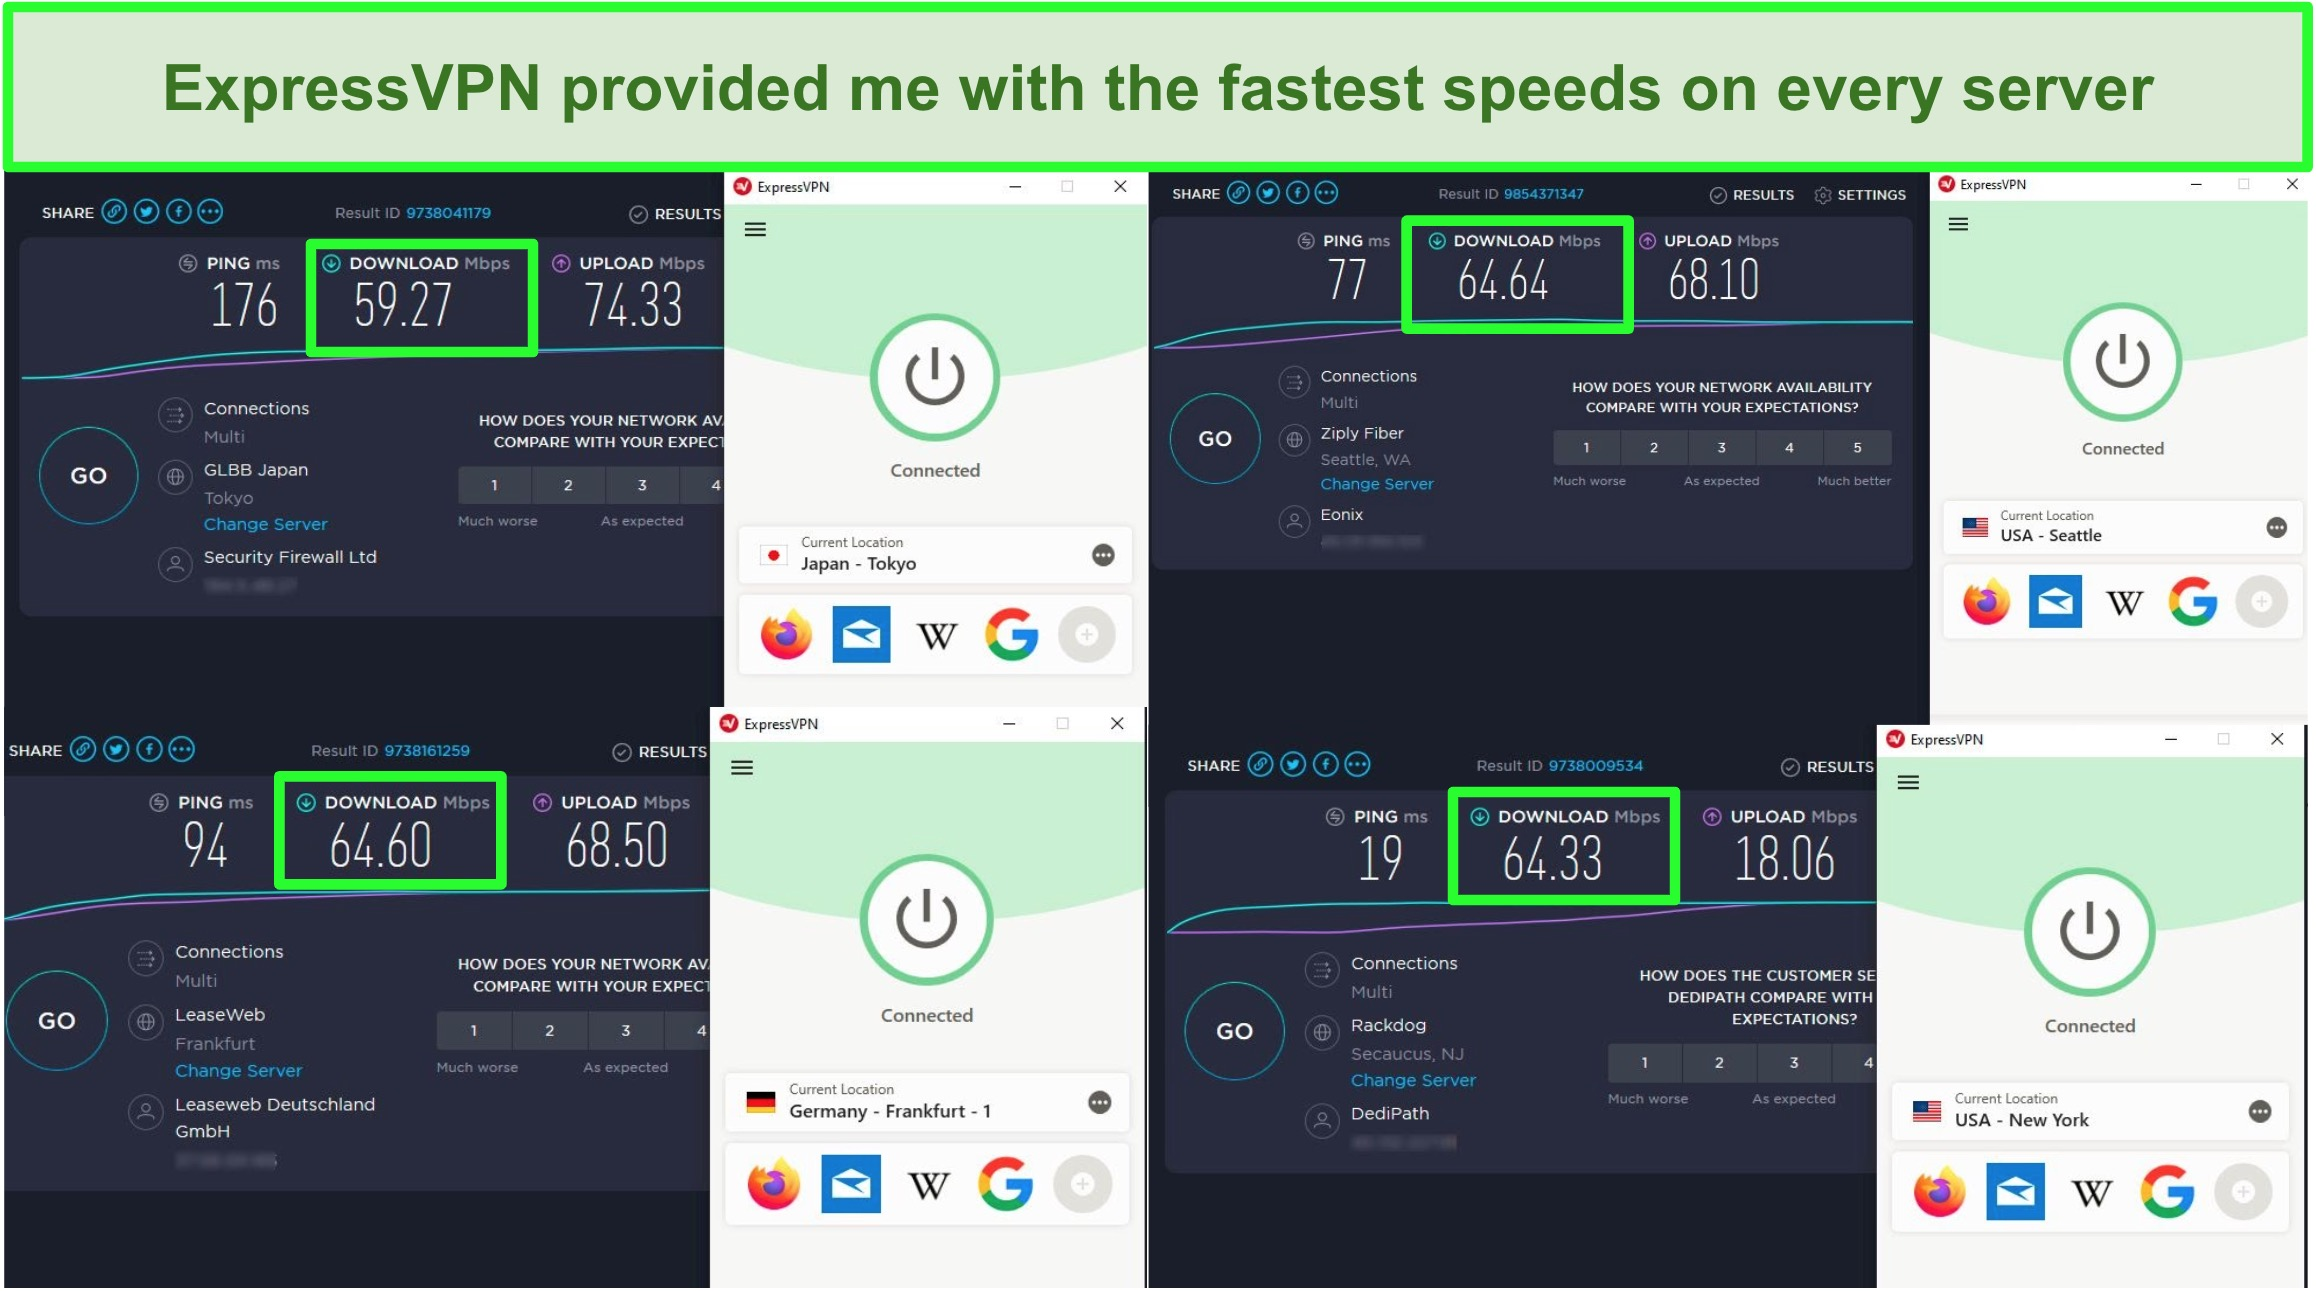 Screenshots of 4 speed tests on ExpressVPN's servers